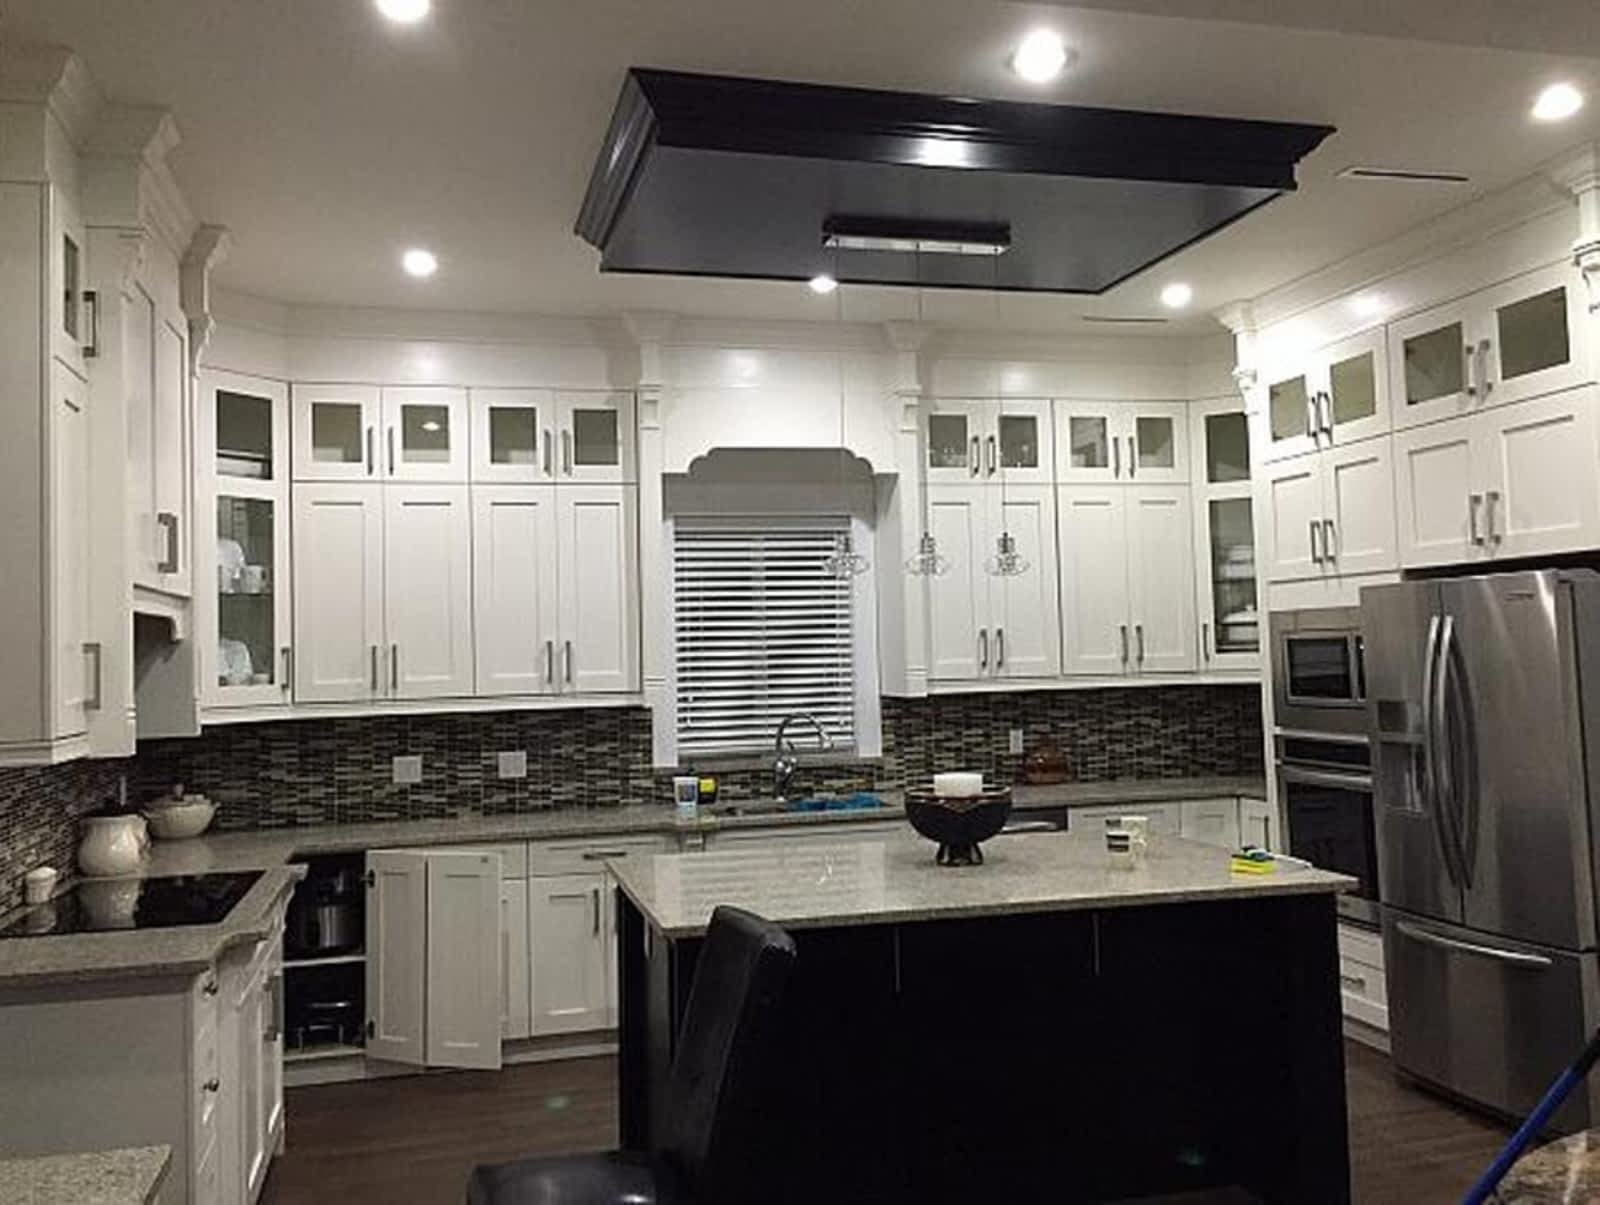 legacy kitchen cabinets sink rugs ltd opening hours 104 12940 80 ave surrey bc